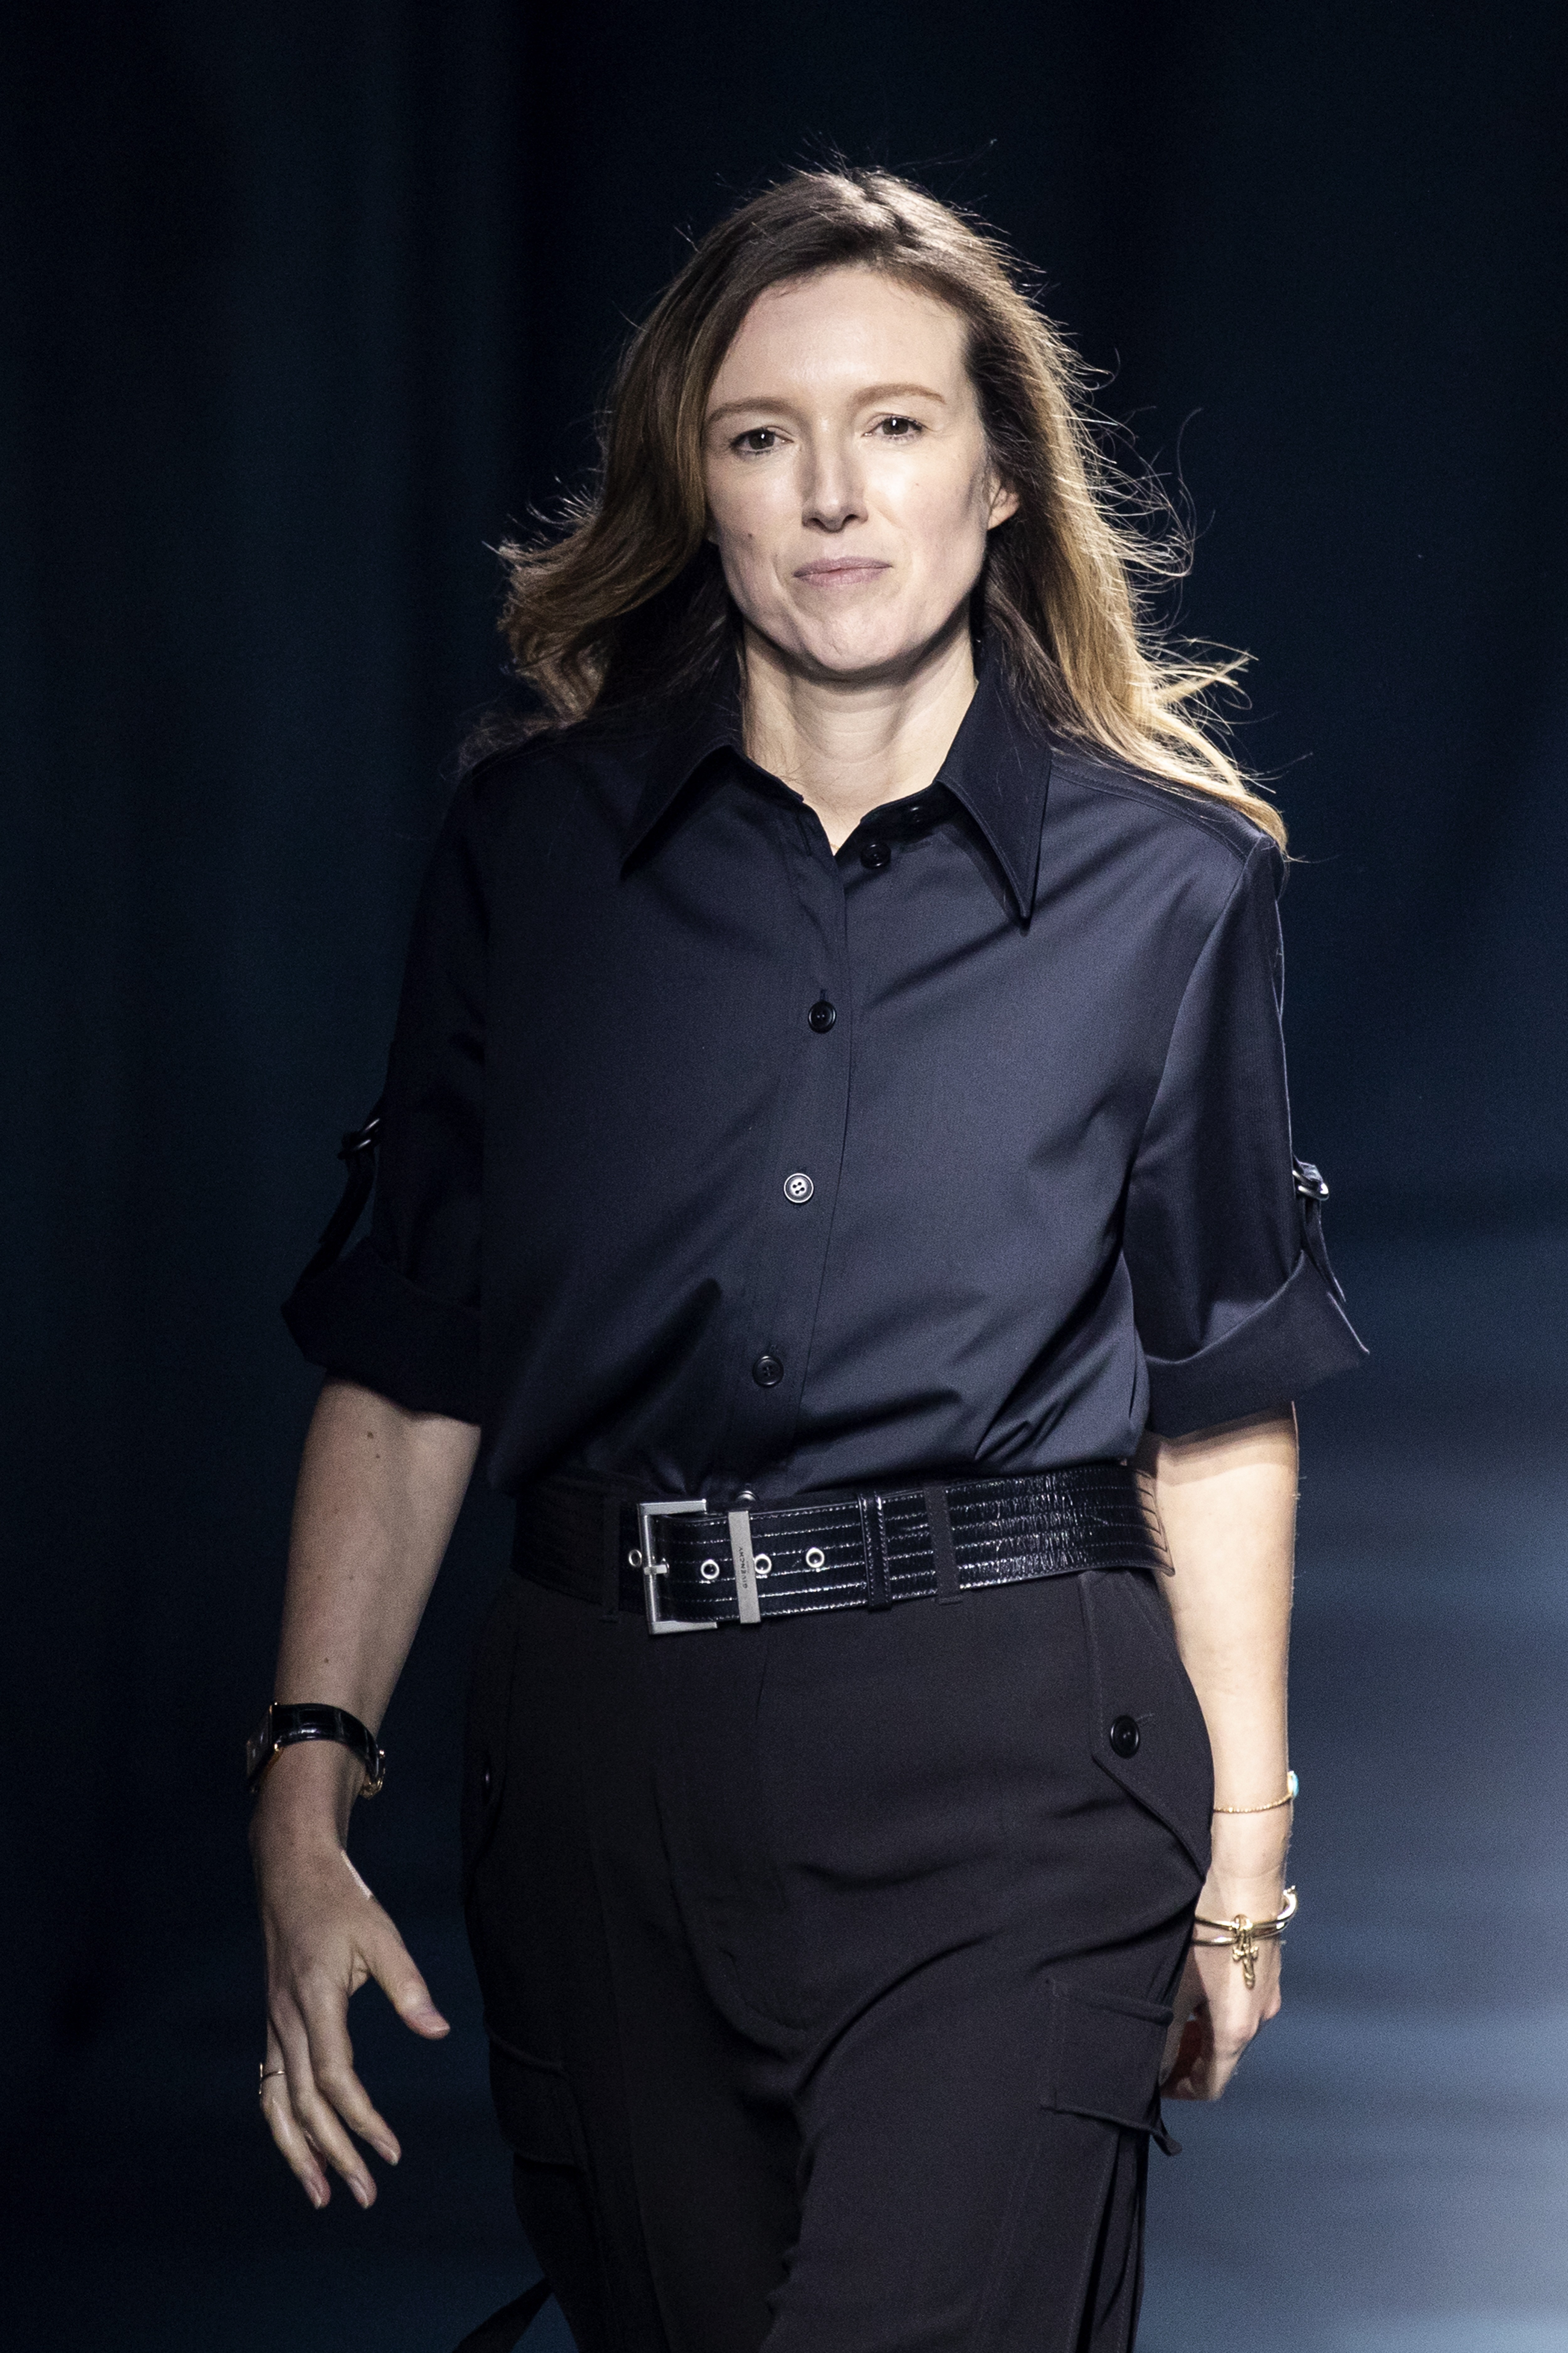 fca7825f526984 After Meghan Markle's royal wedding ... Givenchy designer Clare Waight  Keller's boyish 'tuxedo' show cuts a dash in Paris | South China Morning  Post